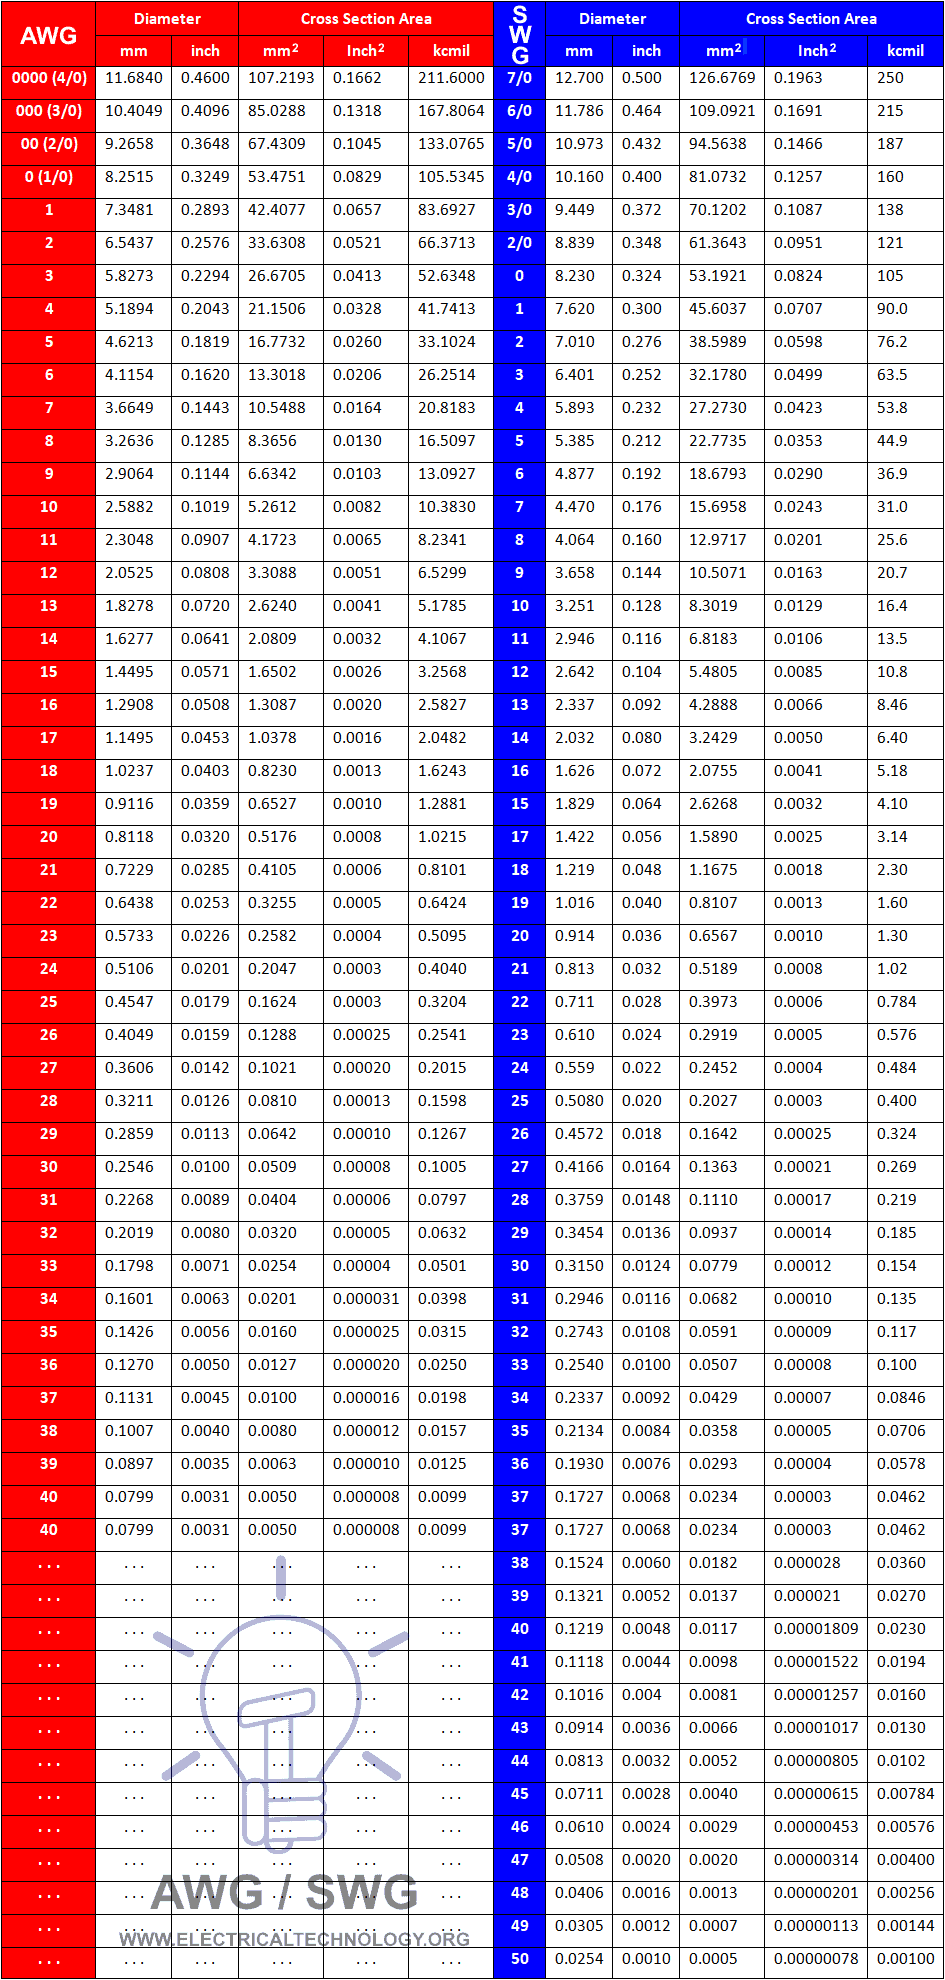 AWG-SWG mm, Inches & kcmil Conversion Chart & Table